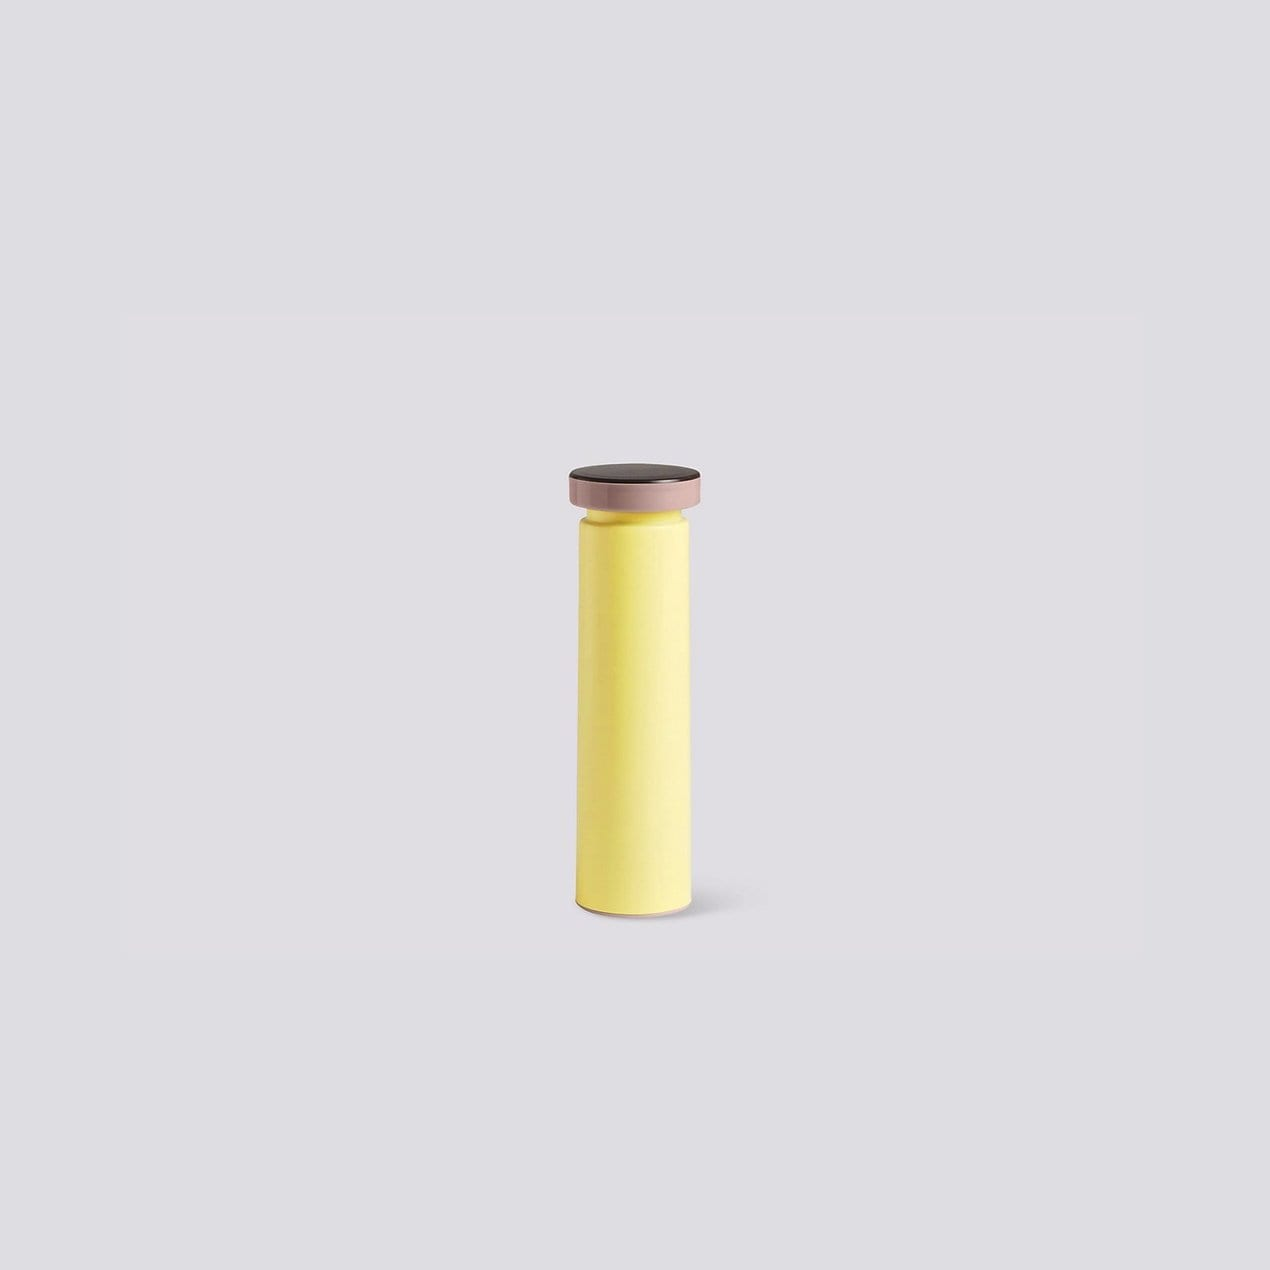 Sowden Salt & Pepper Grinder / Neighborhood Goods